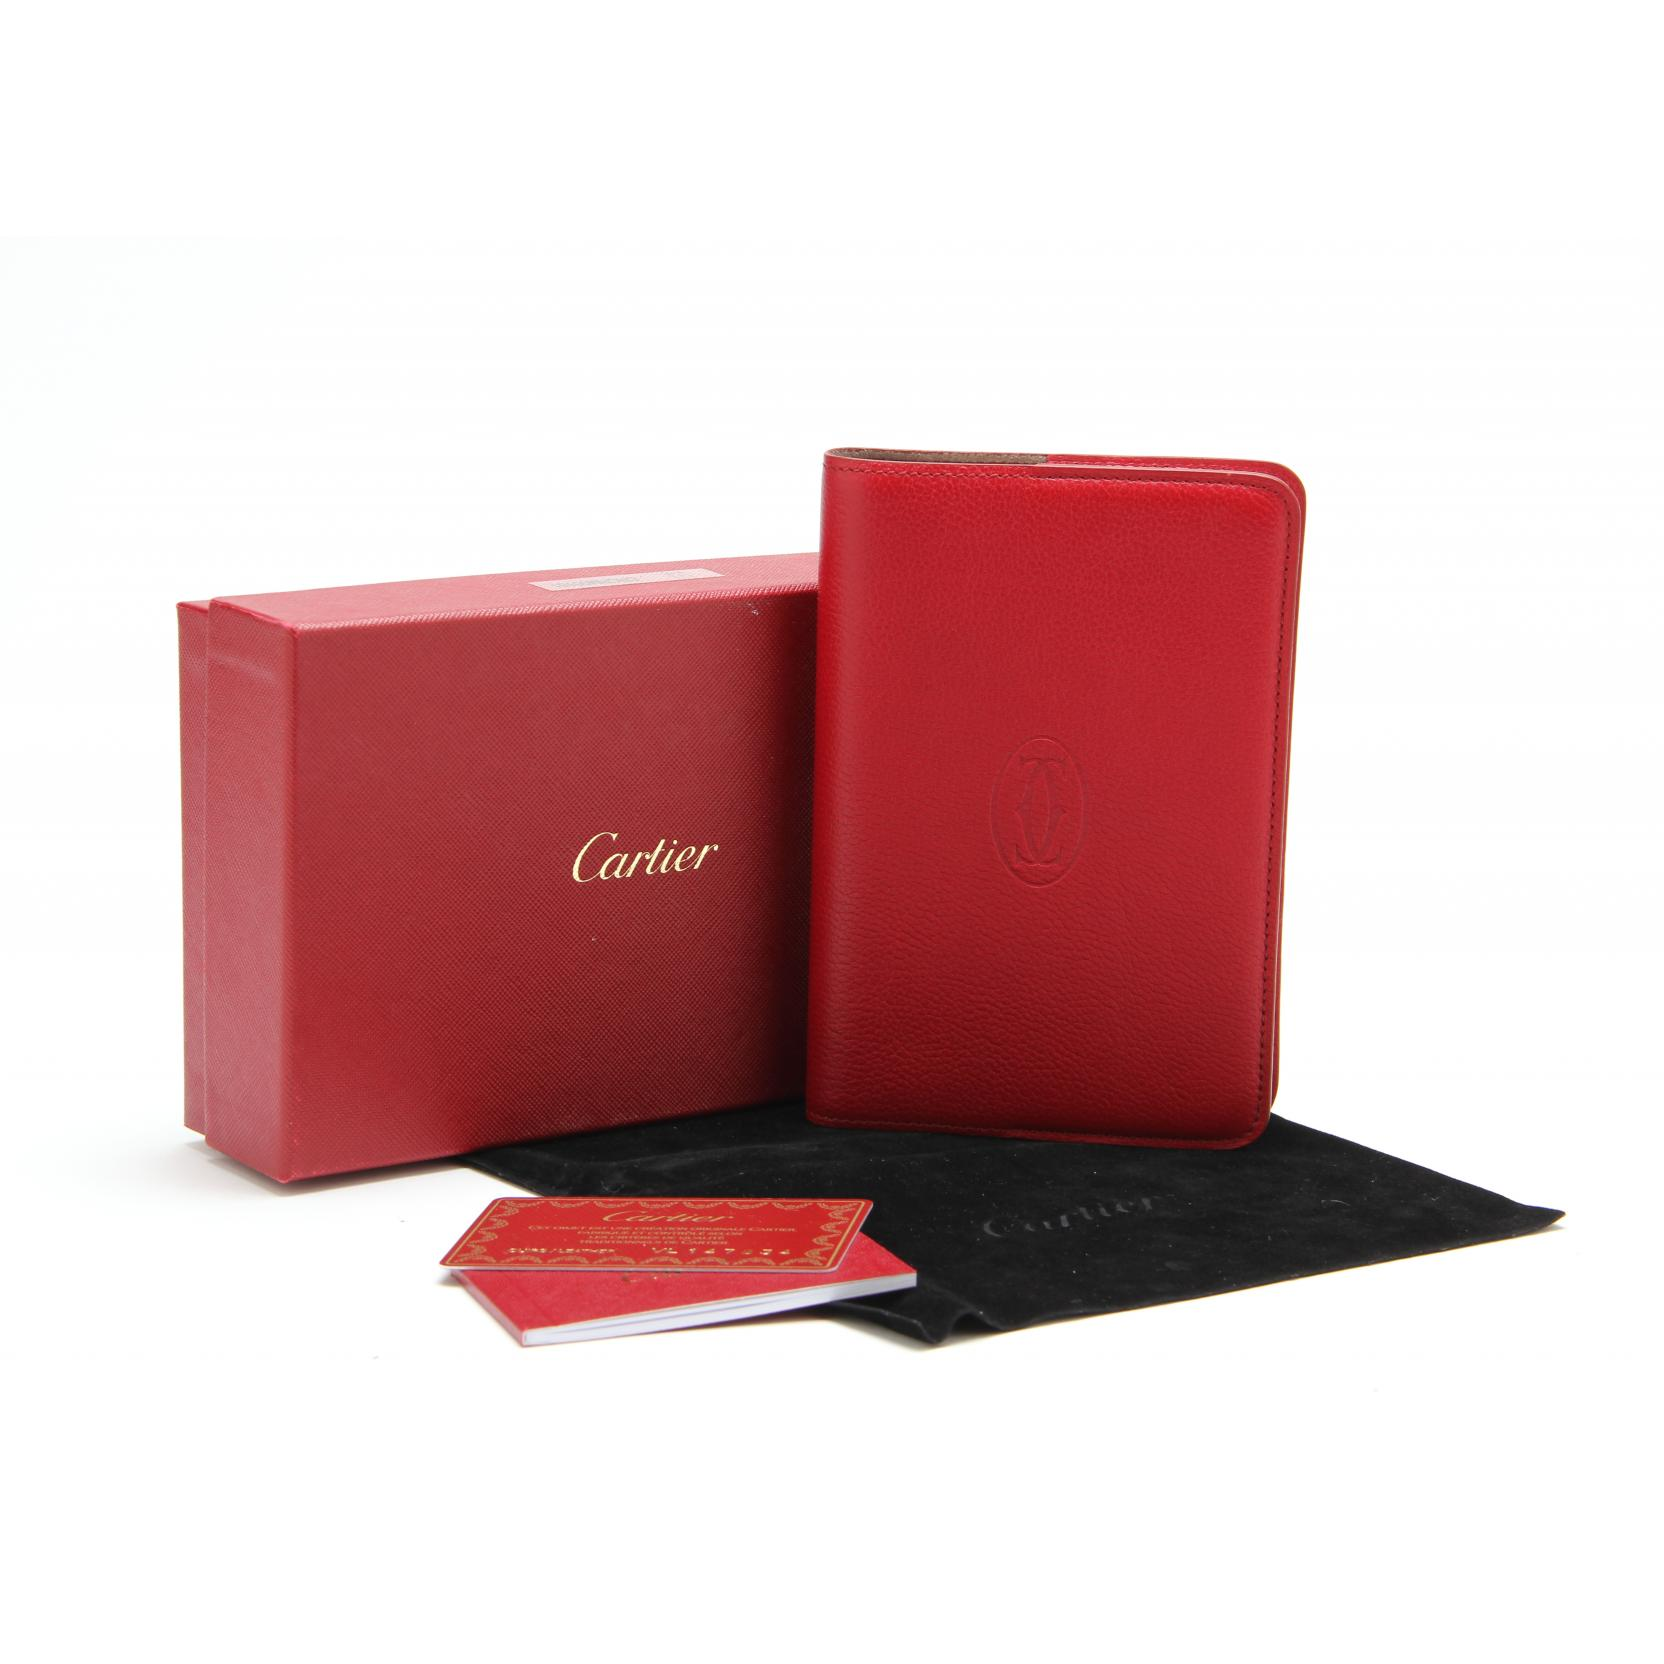 classic-red-leather-diary-notebook-cartier